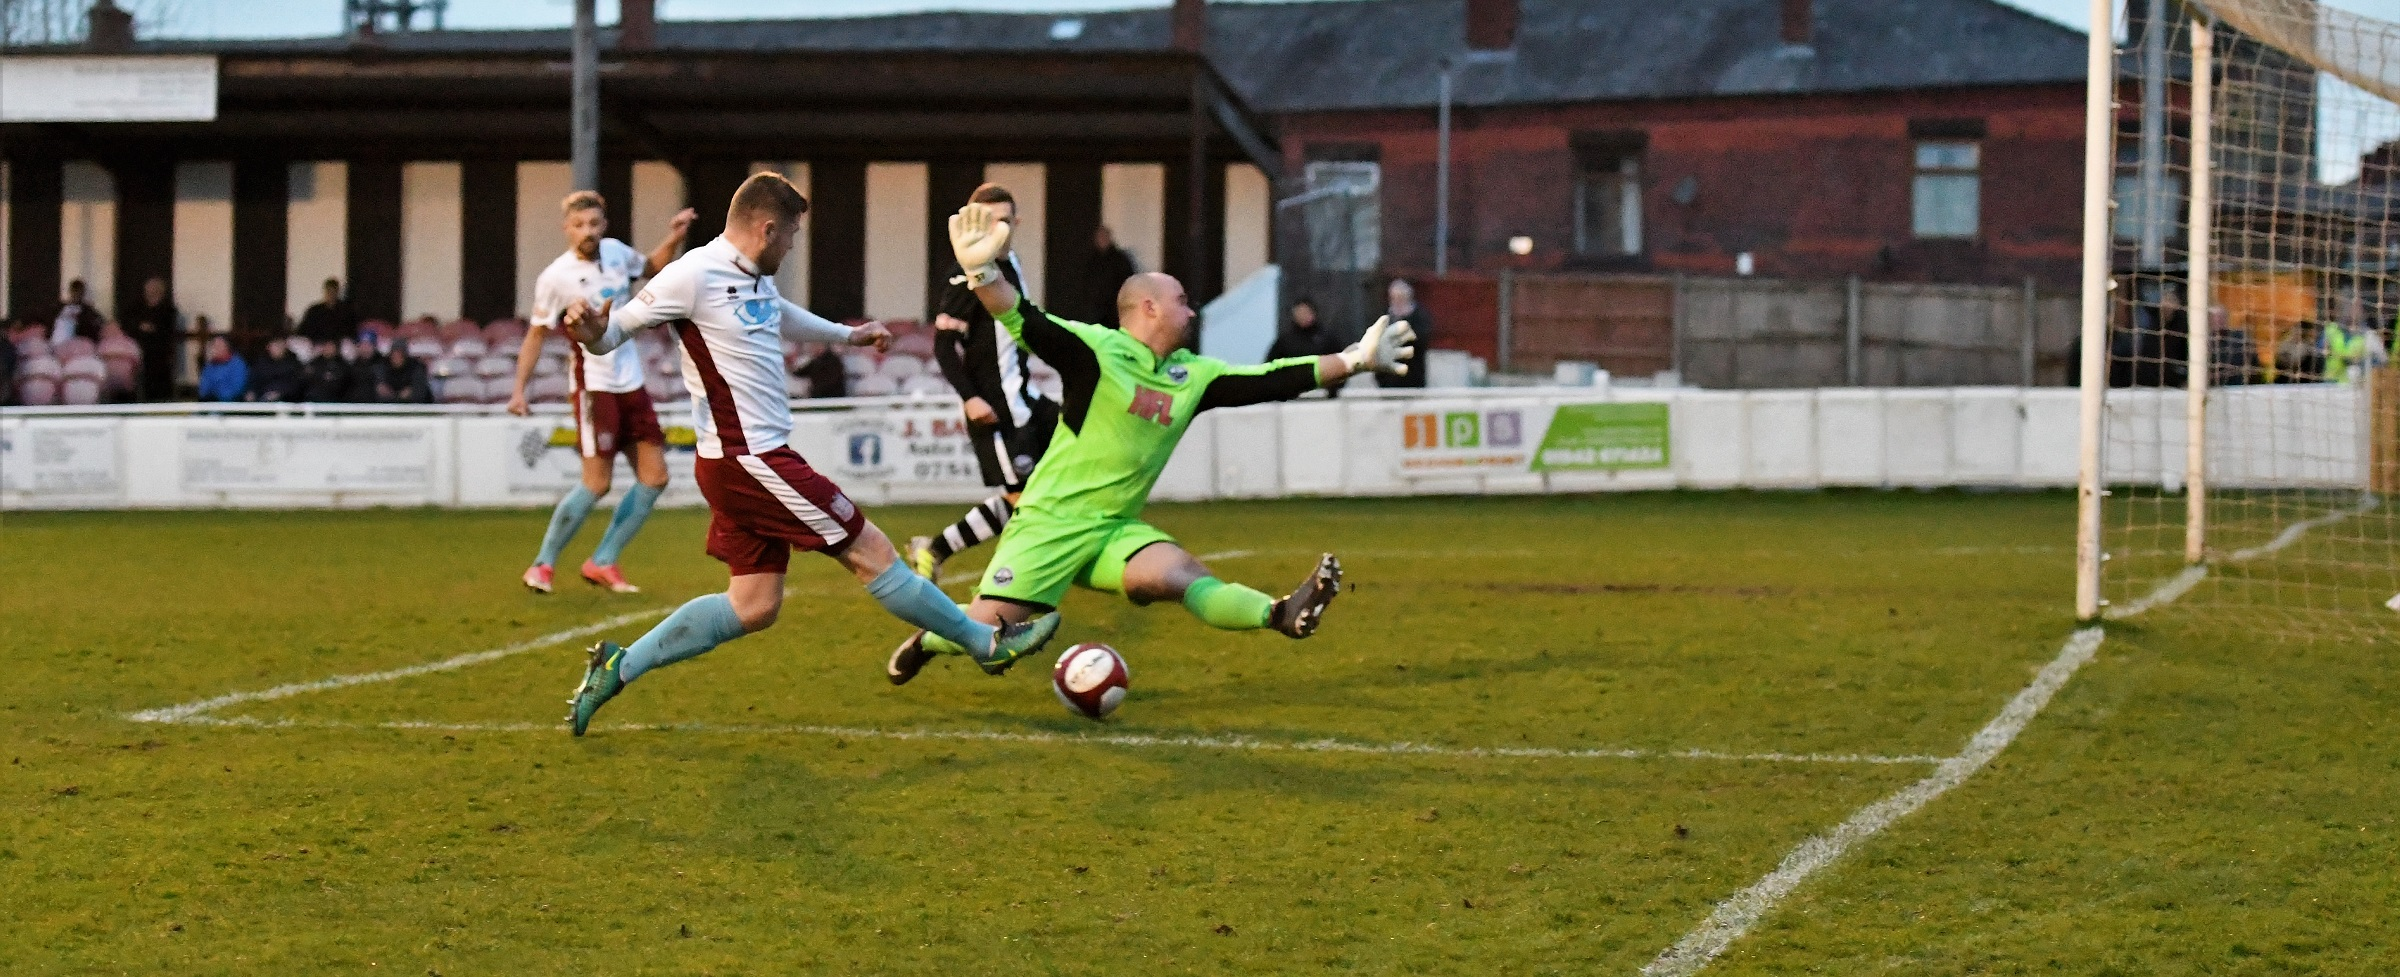 Atherton Collieries 0-2 South Shields: Another important win secured